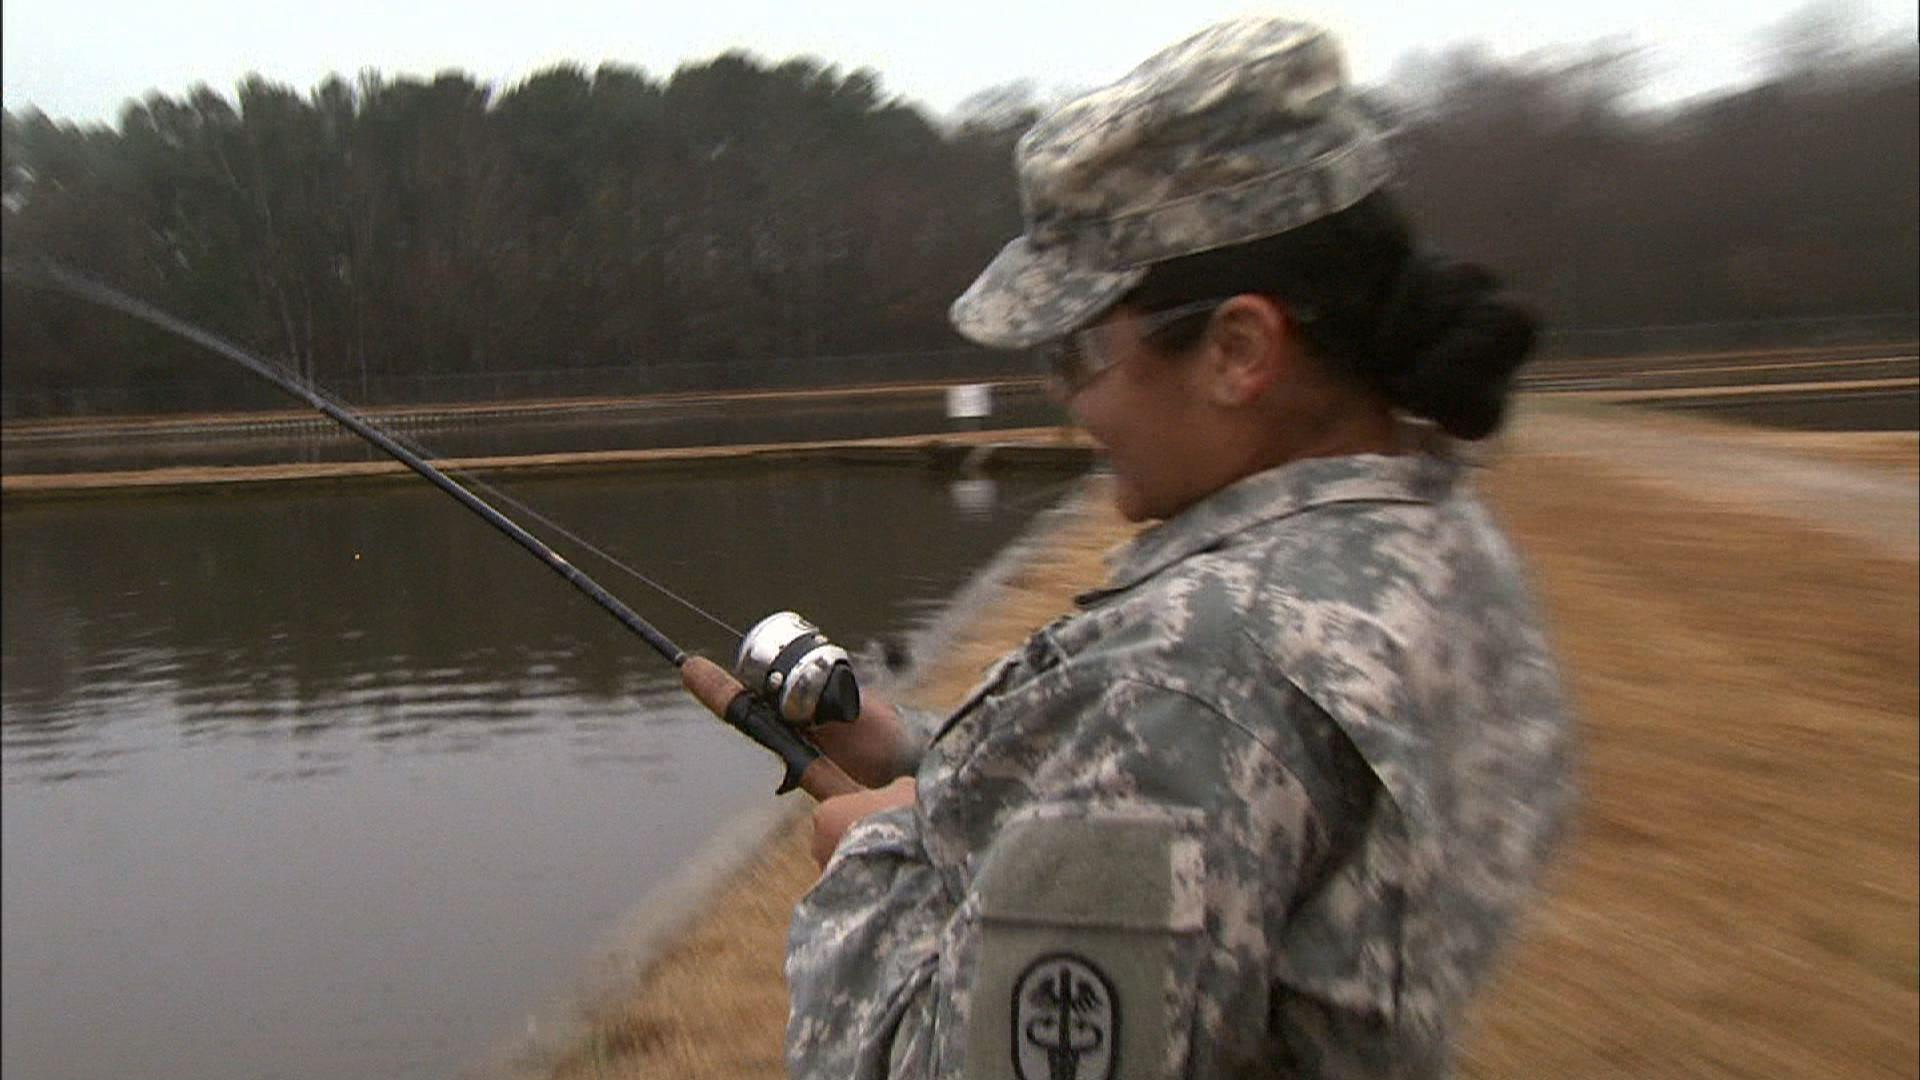 Video wounded warriors fishing watch unc tv science for Carolina fishing tv